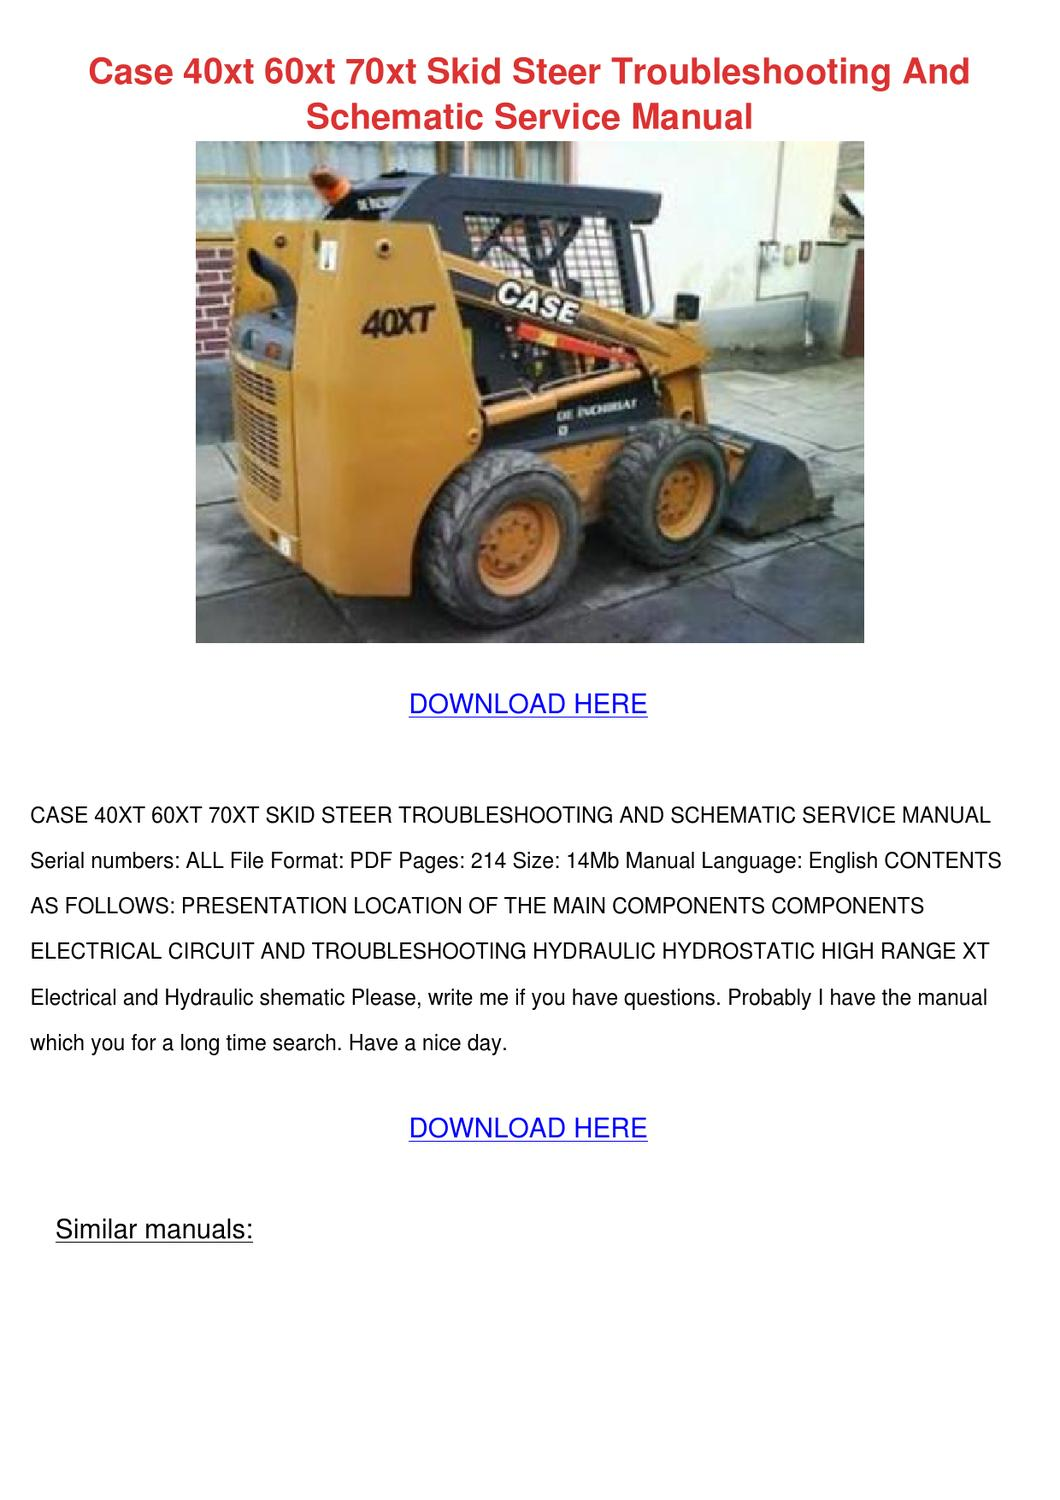 case 40xt 60xt 70xt skid steer troubleshootin by